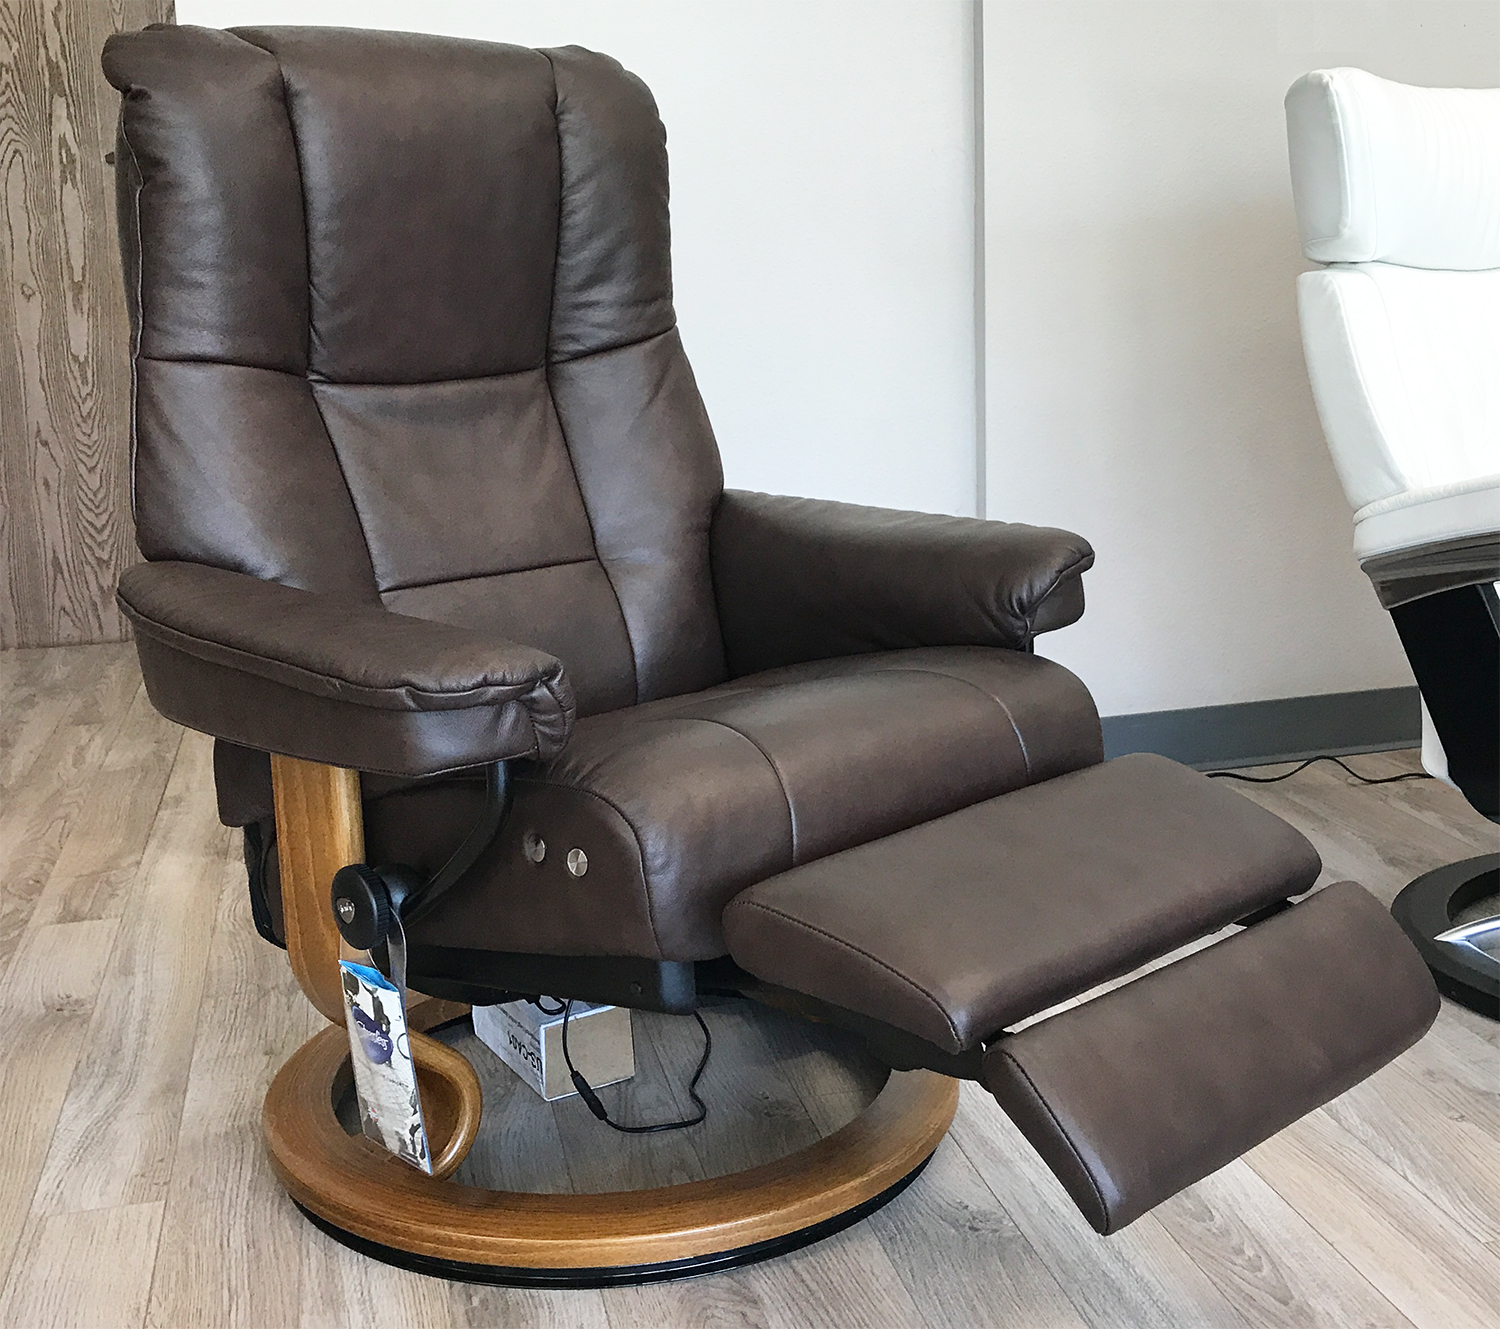 www recliner chairs chairo stressless mayfair legcomfort paloma chocolate leather